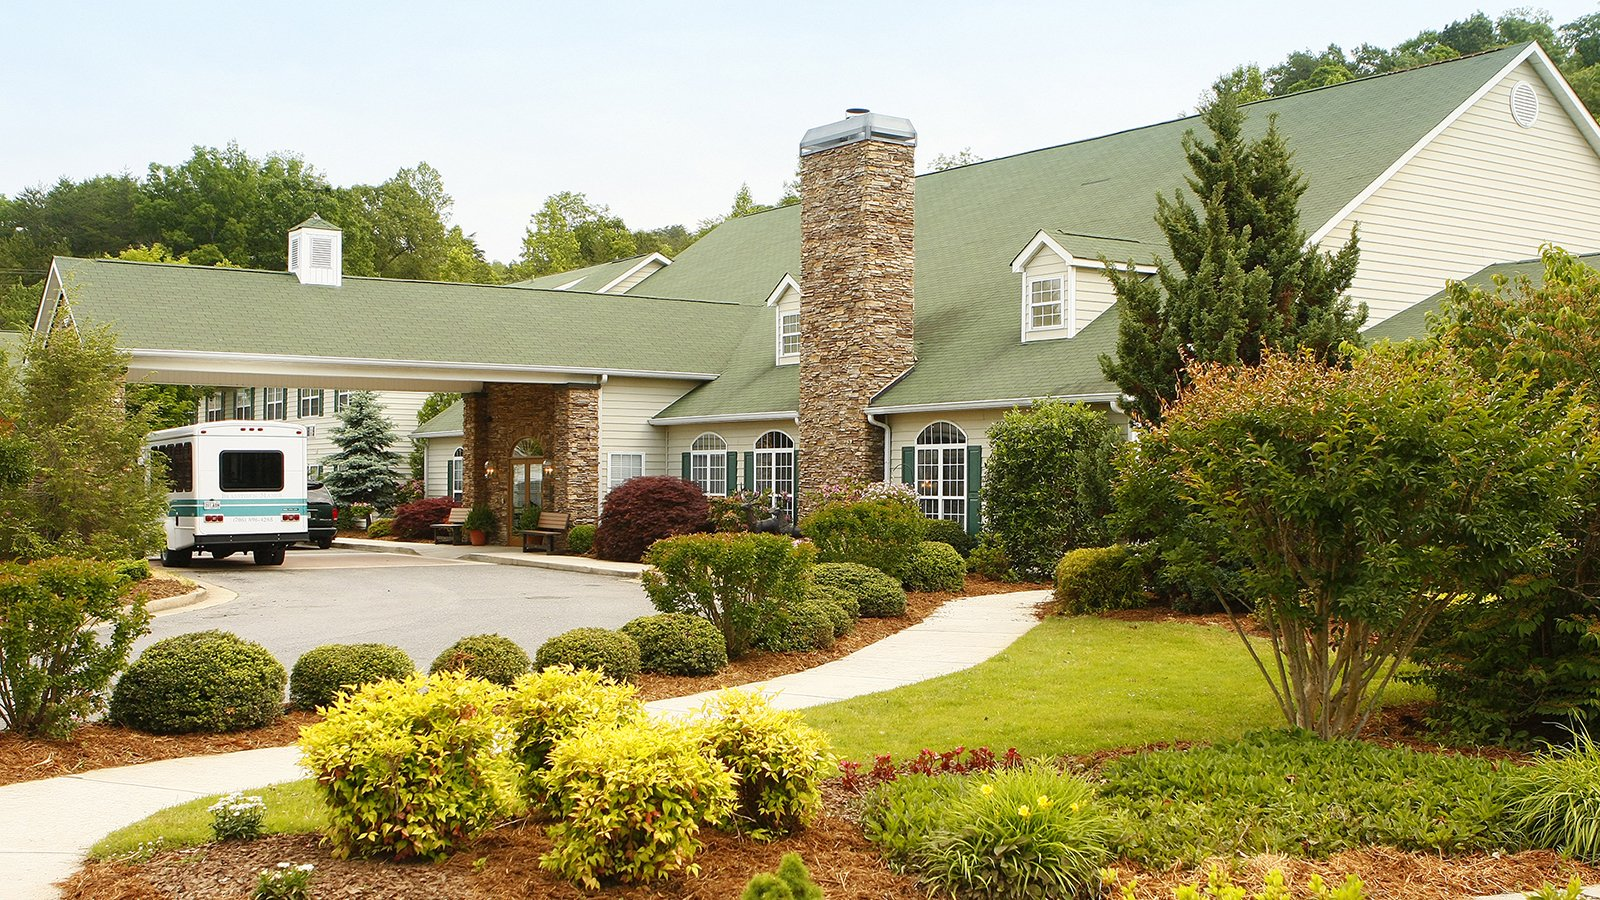 Brasstown Manor Senior Living Community Entrance